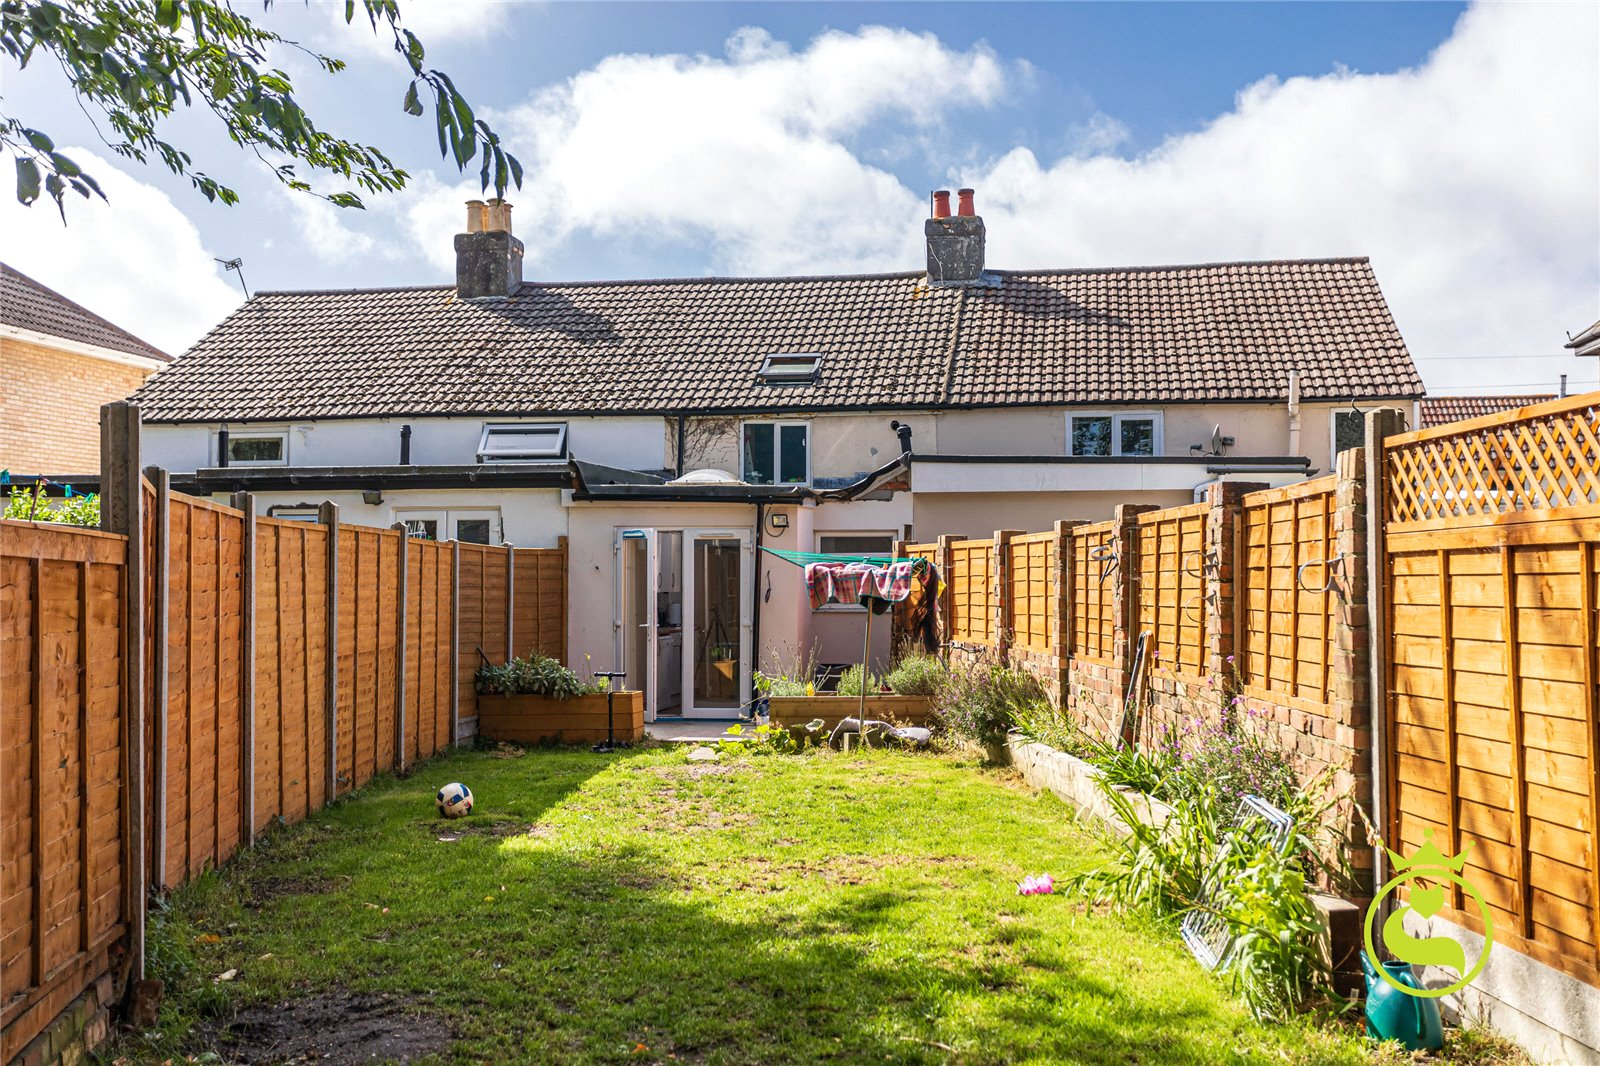 2 bed house for sale in Jubilee Road, Parkstone, BH12